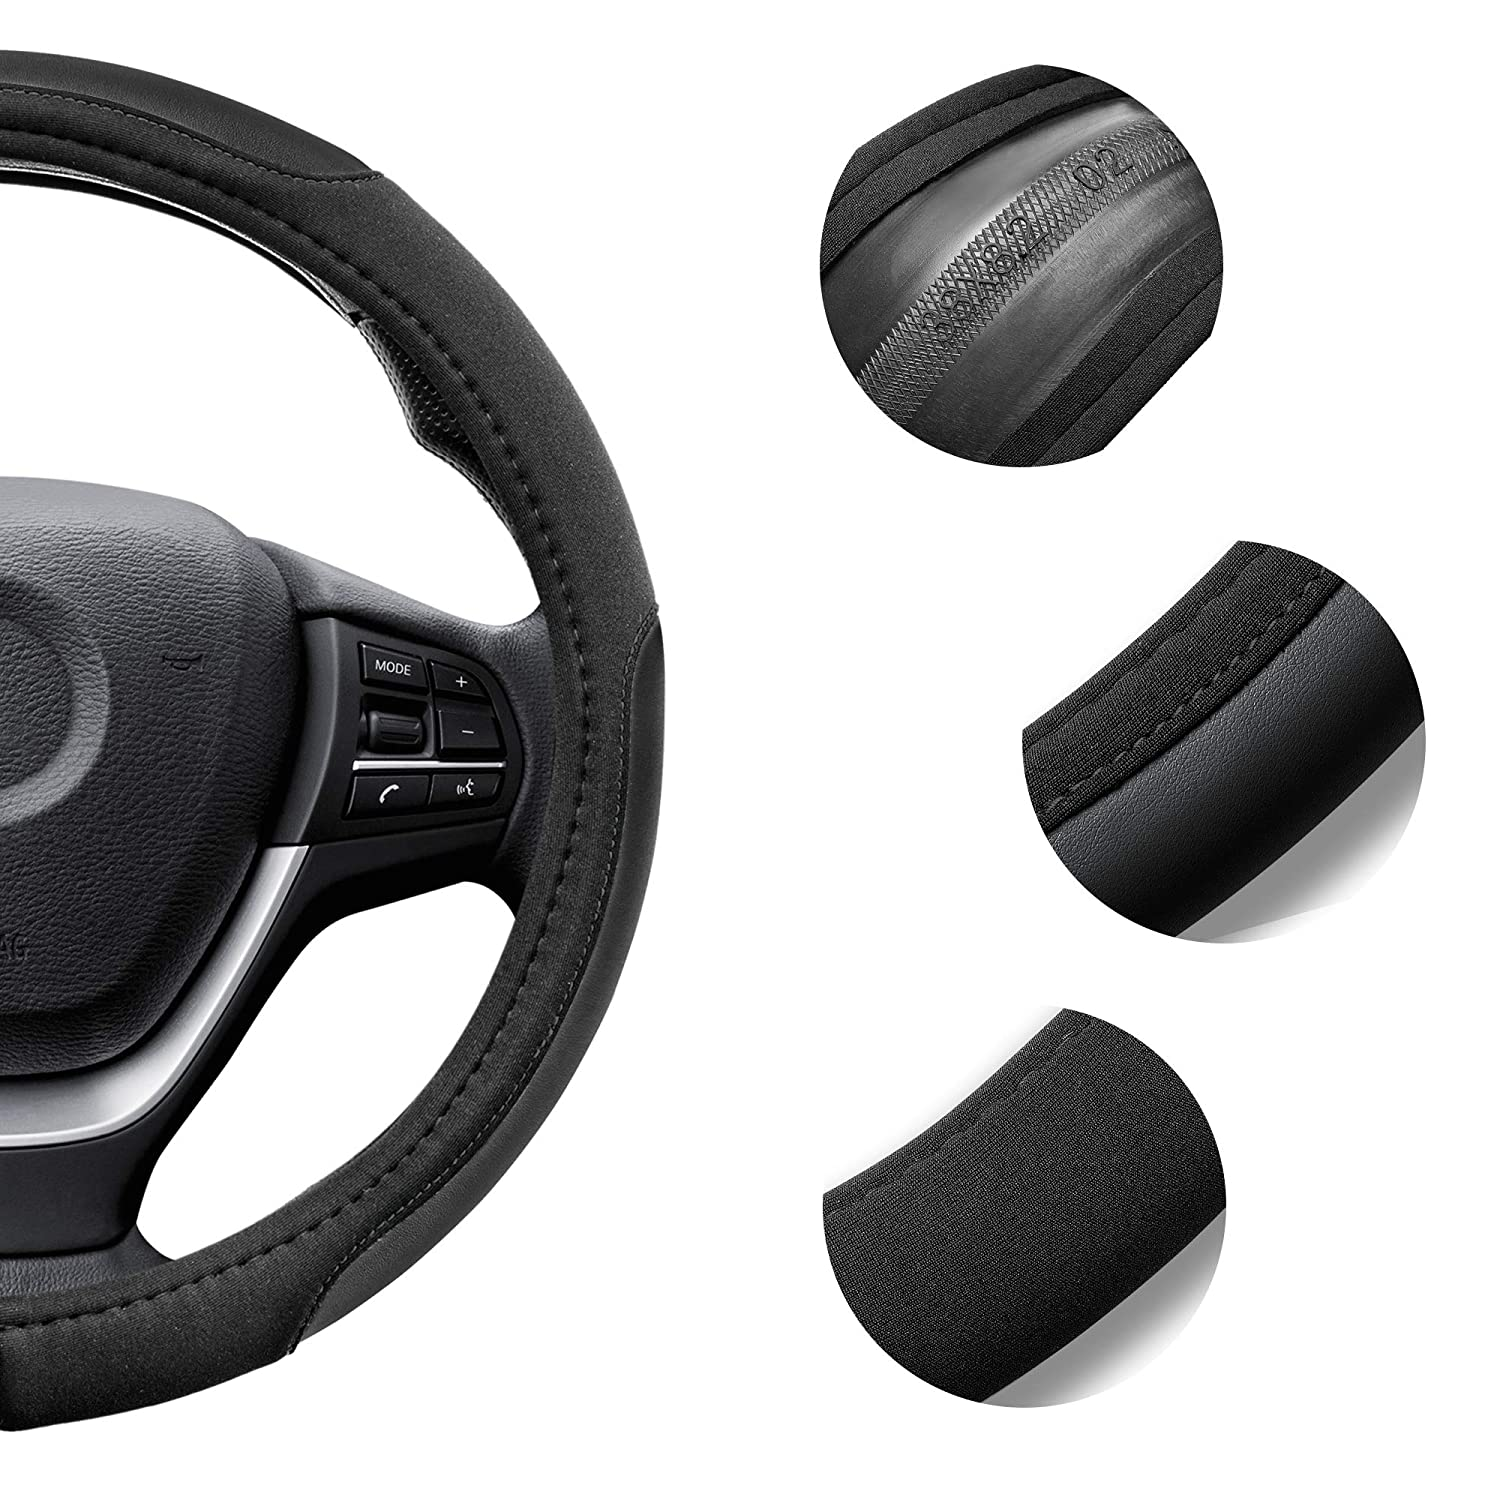 Elantrip Black Microfiber Leather Steering Wheel Cover 14 1//2 inch to 15 inch